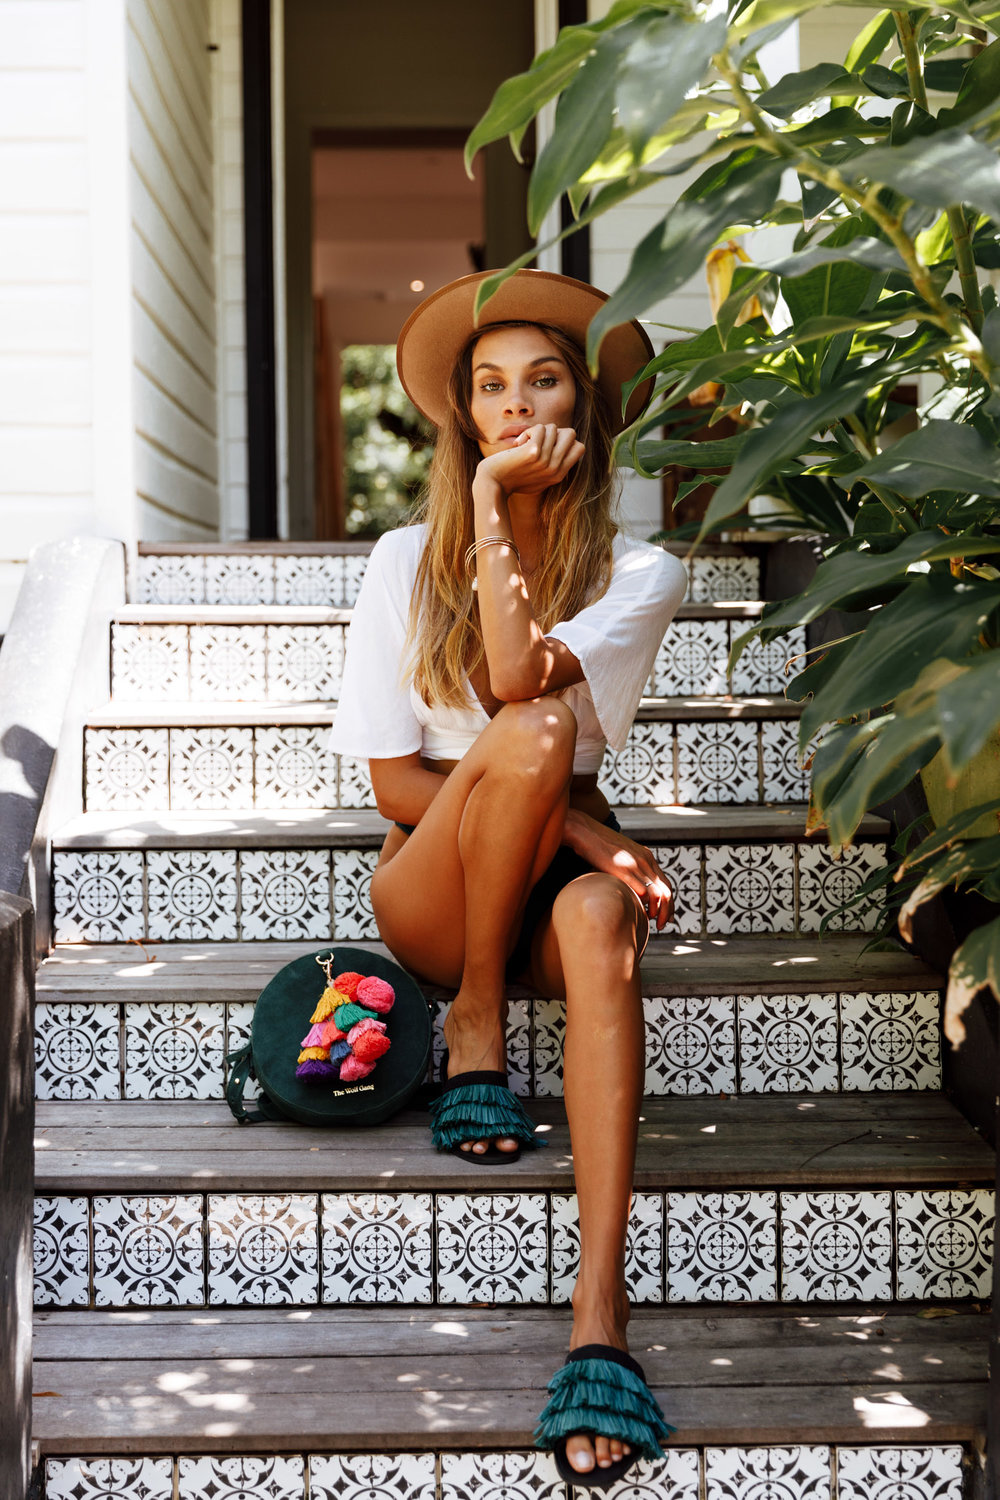 Tahnee Pinches at The Bower Byron Bay photoshoot by Morgan McDougall from Cosmos Companions for The Wolf Gang and Arizona Daphne.